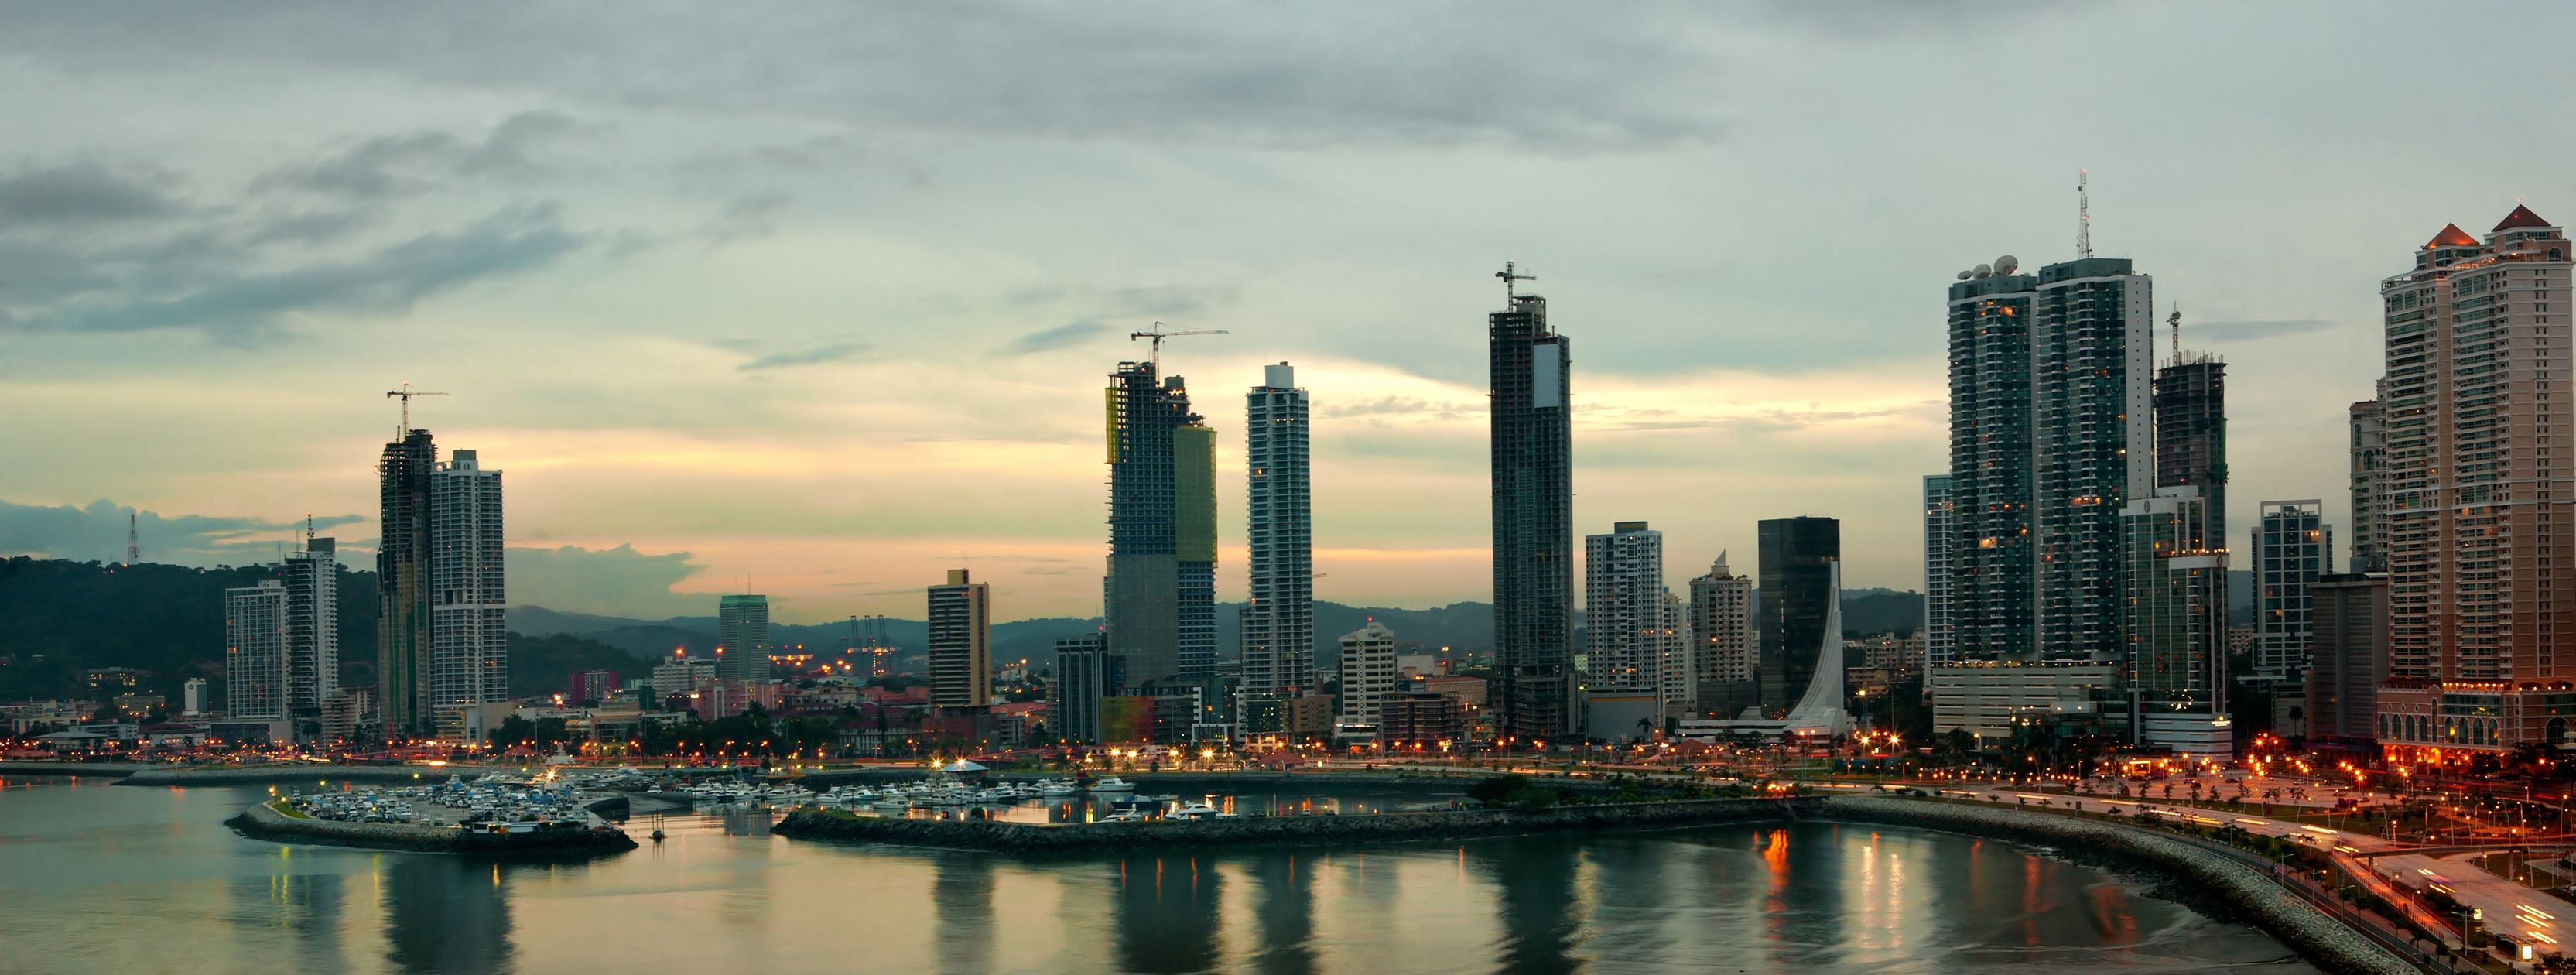 Hotels In Old Town Panama City